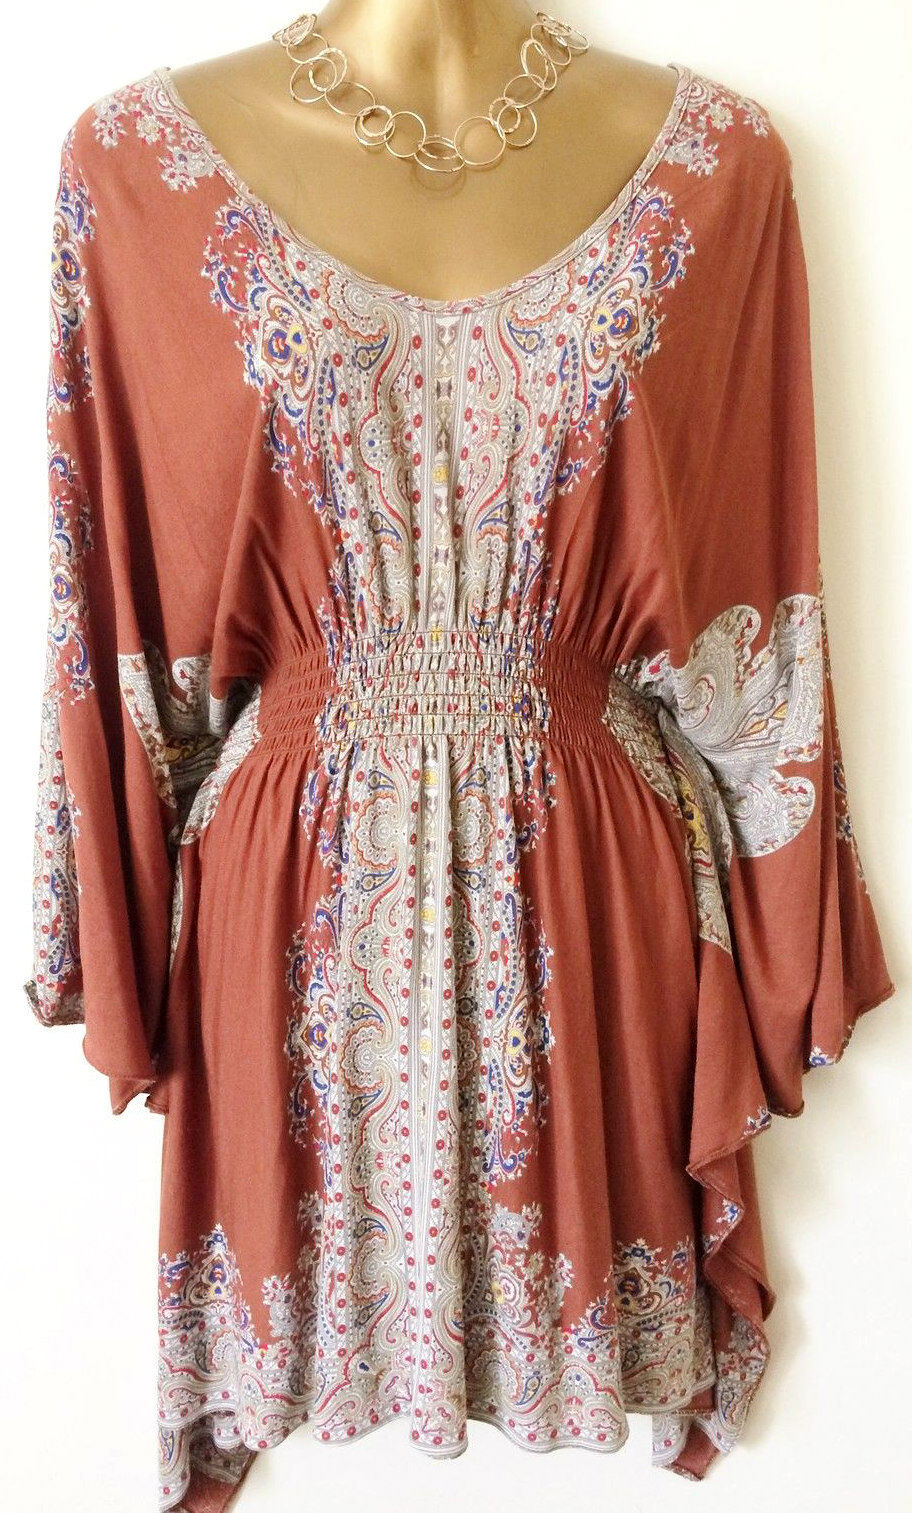 NEW River Island KIMONO KAFTAN COVER UP TUNIC TOP DRESS COMPLETELY SOLD-OUT